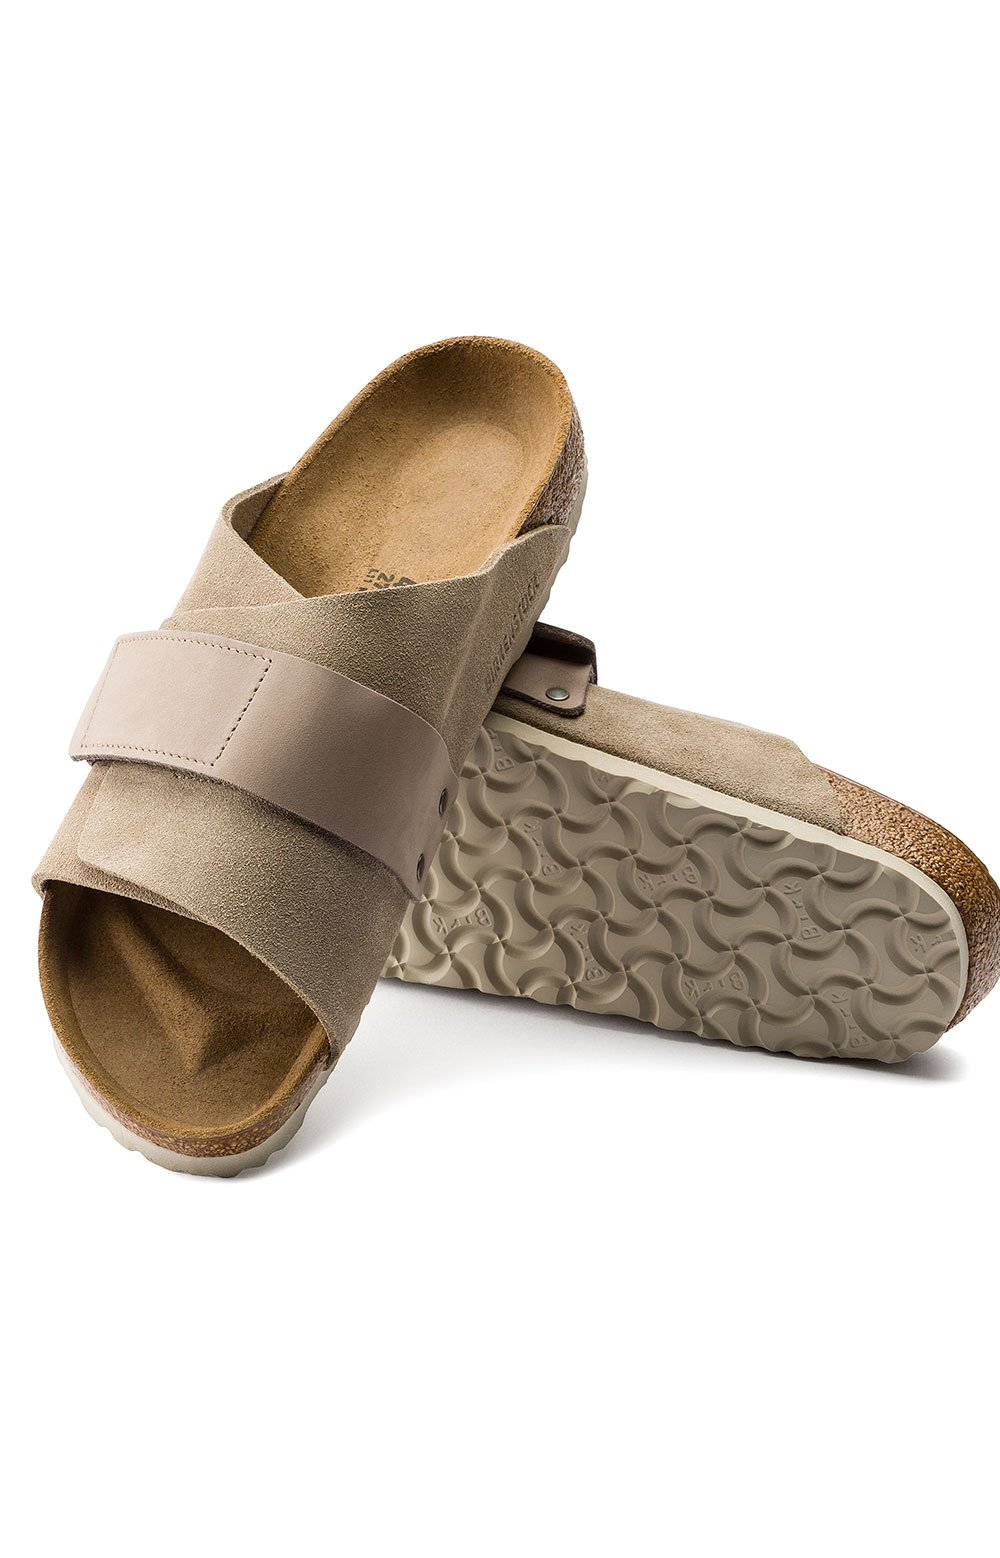 (1015573) Kyoto Sandals - Taupe 5